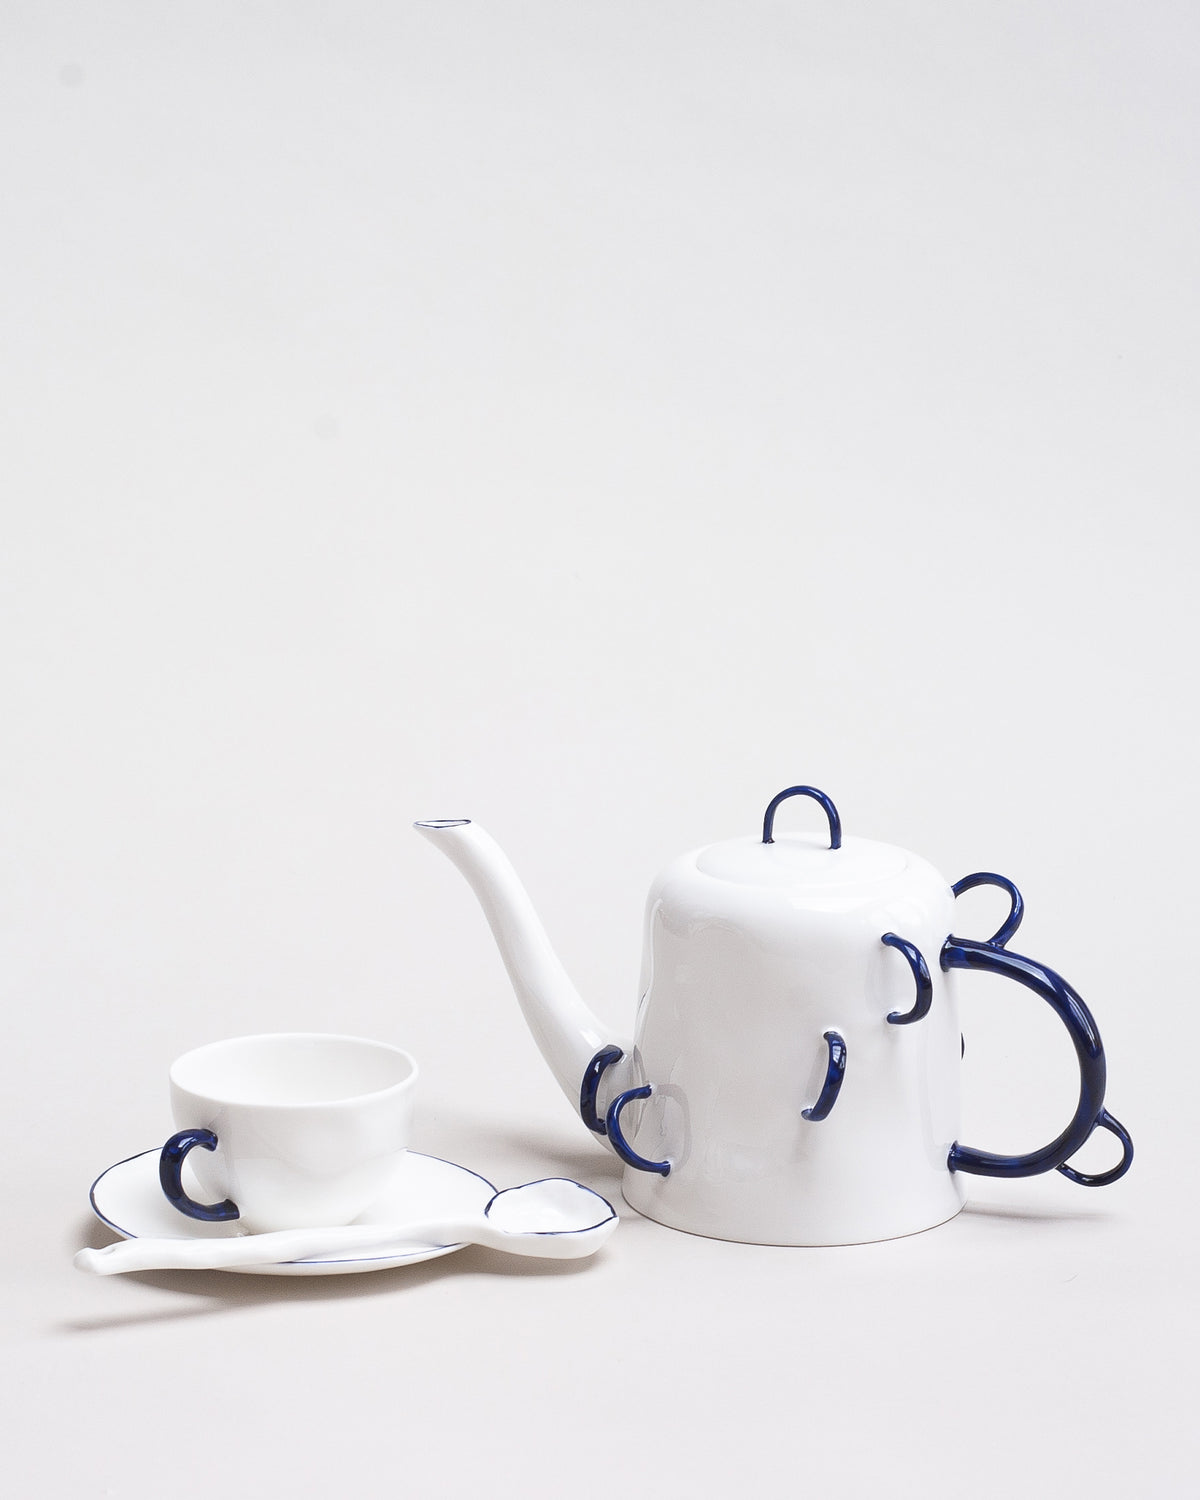 Surreal Teapot One